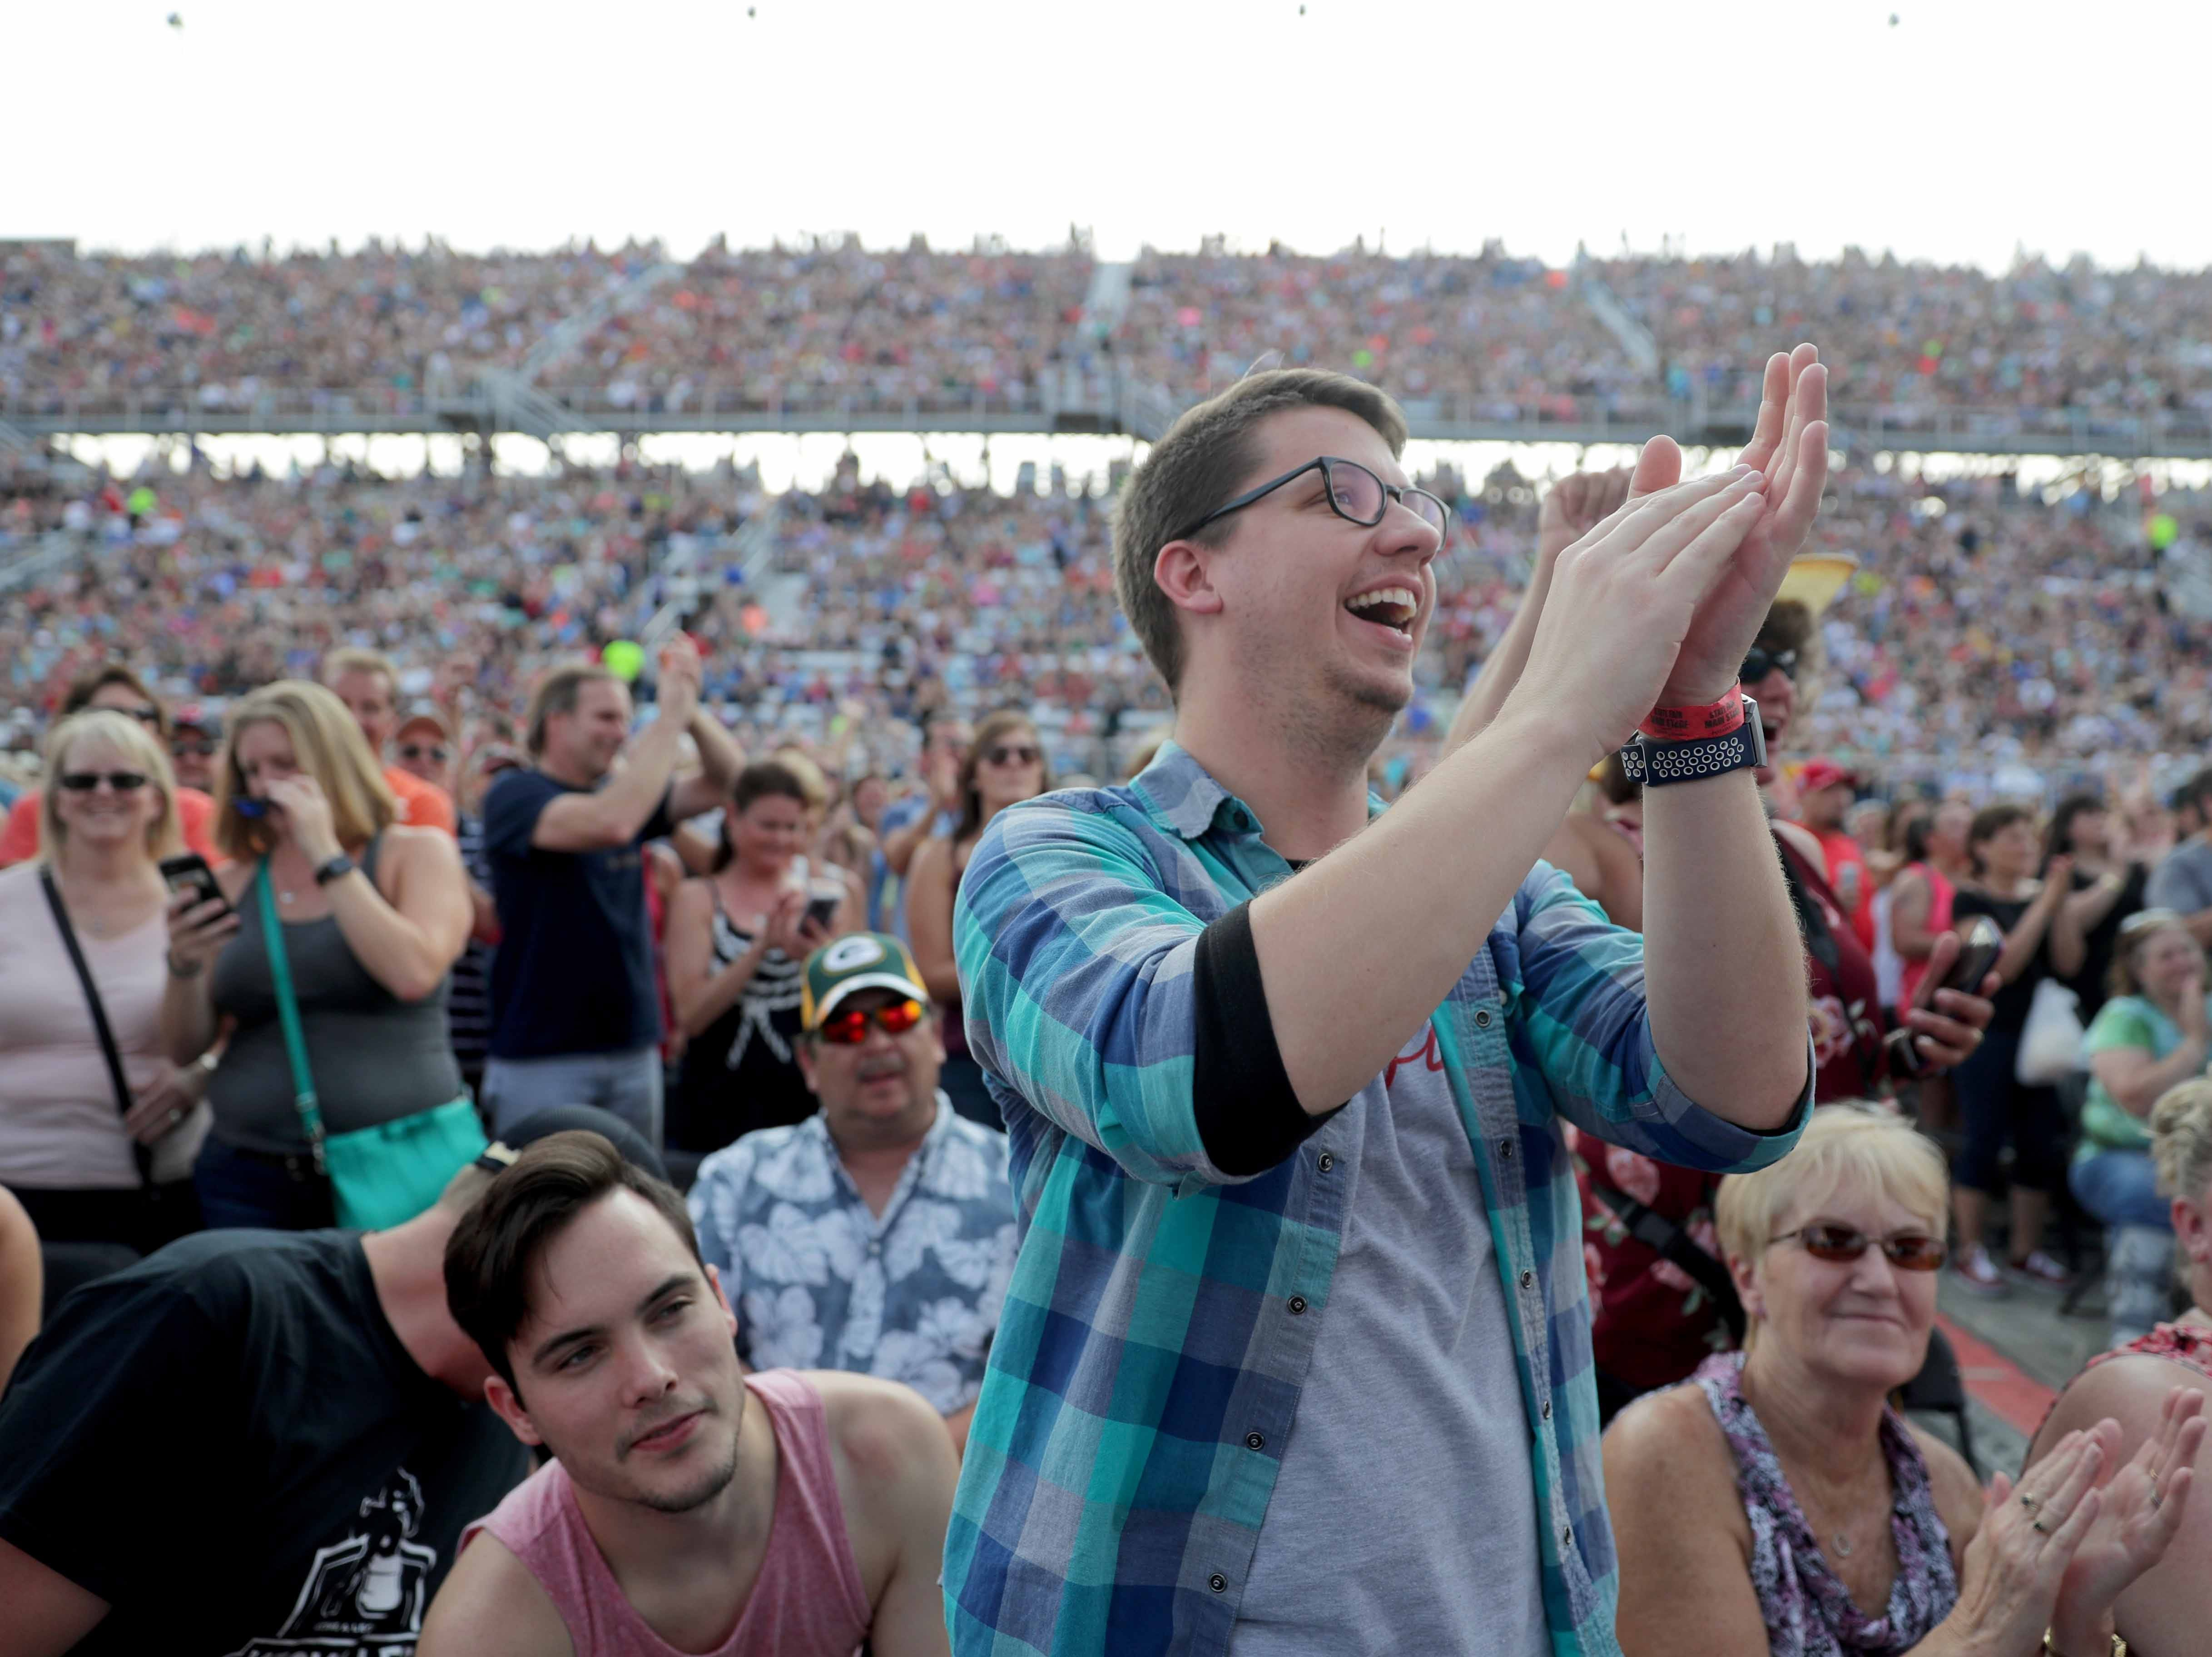 Fans cheer as country legend Reba McEntire performs a sold-out show at the Wisconsin State Fair.